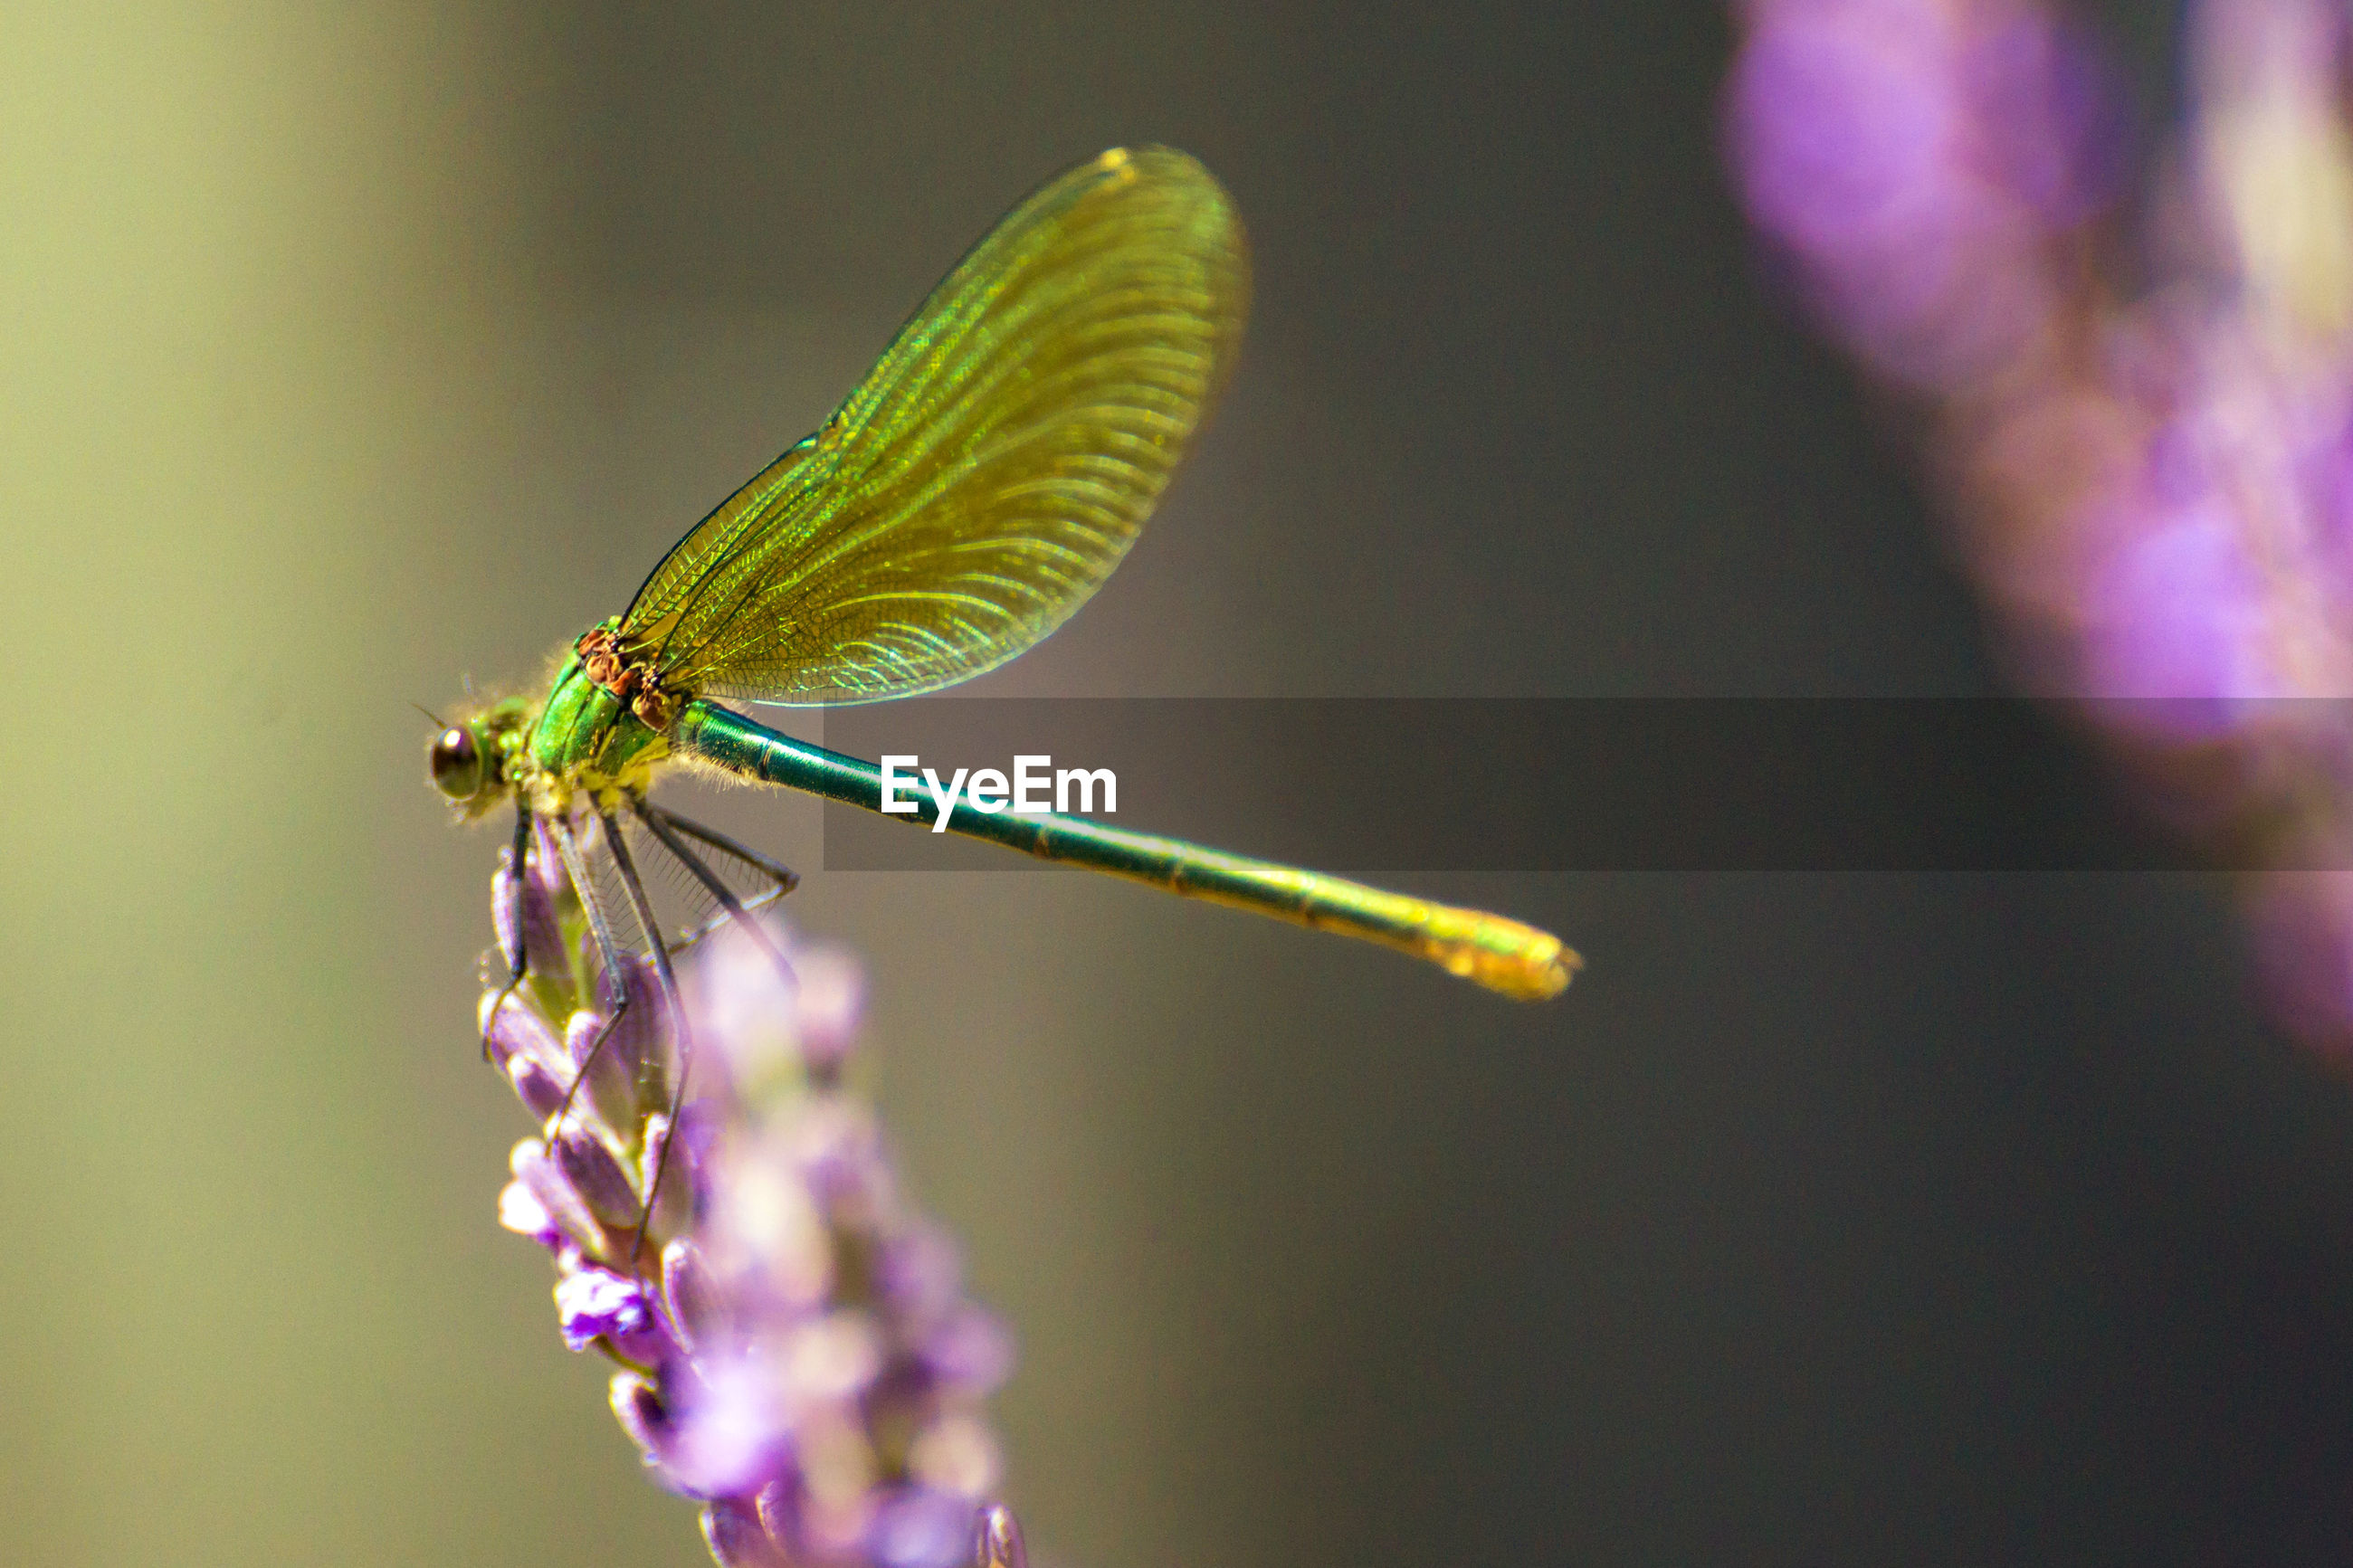 Banded beauty dragonfly on lavender